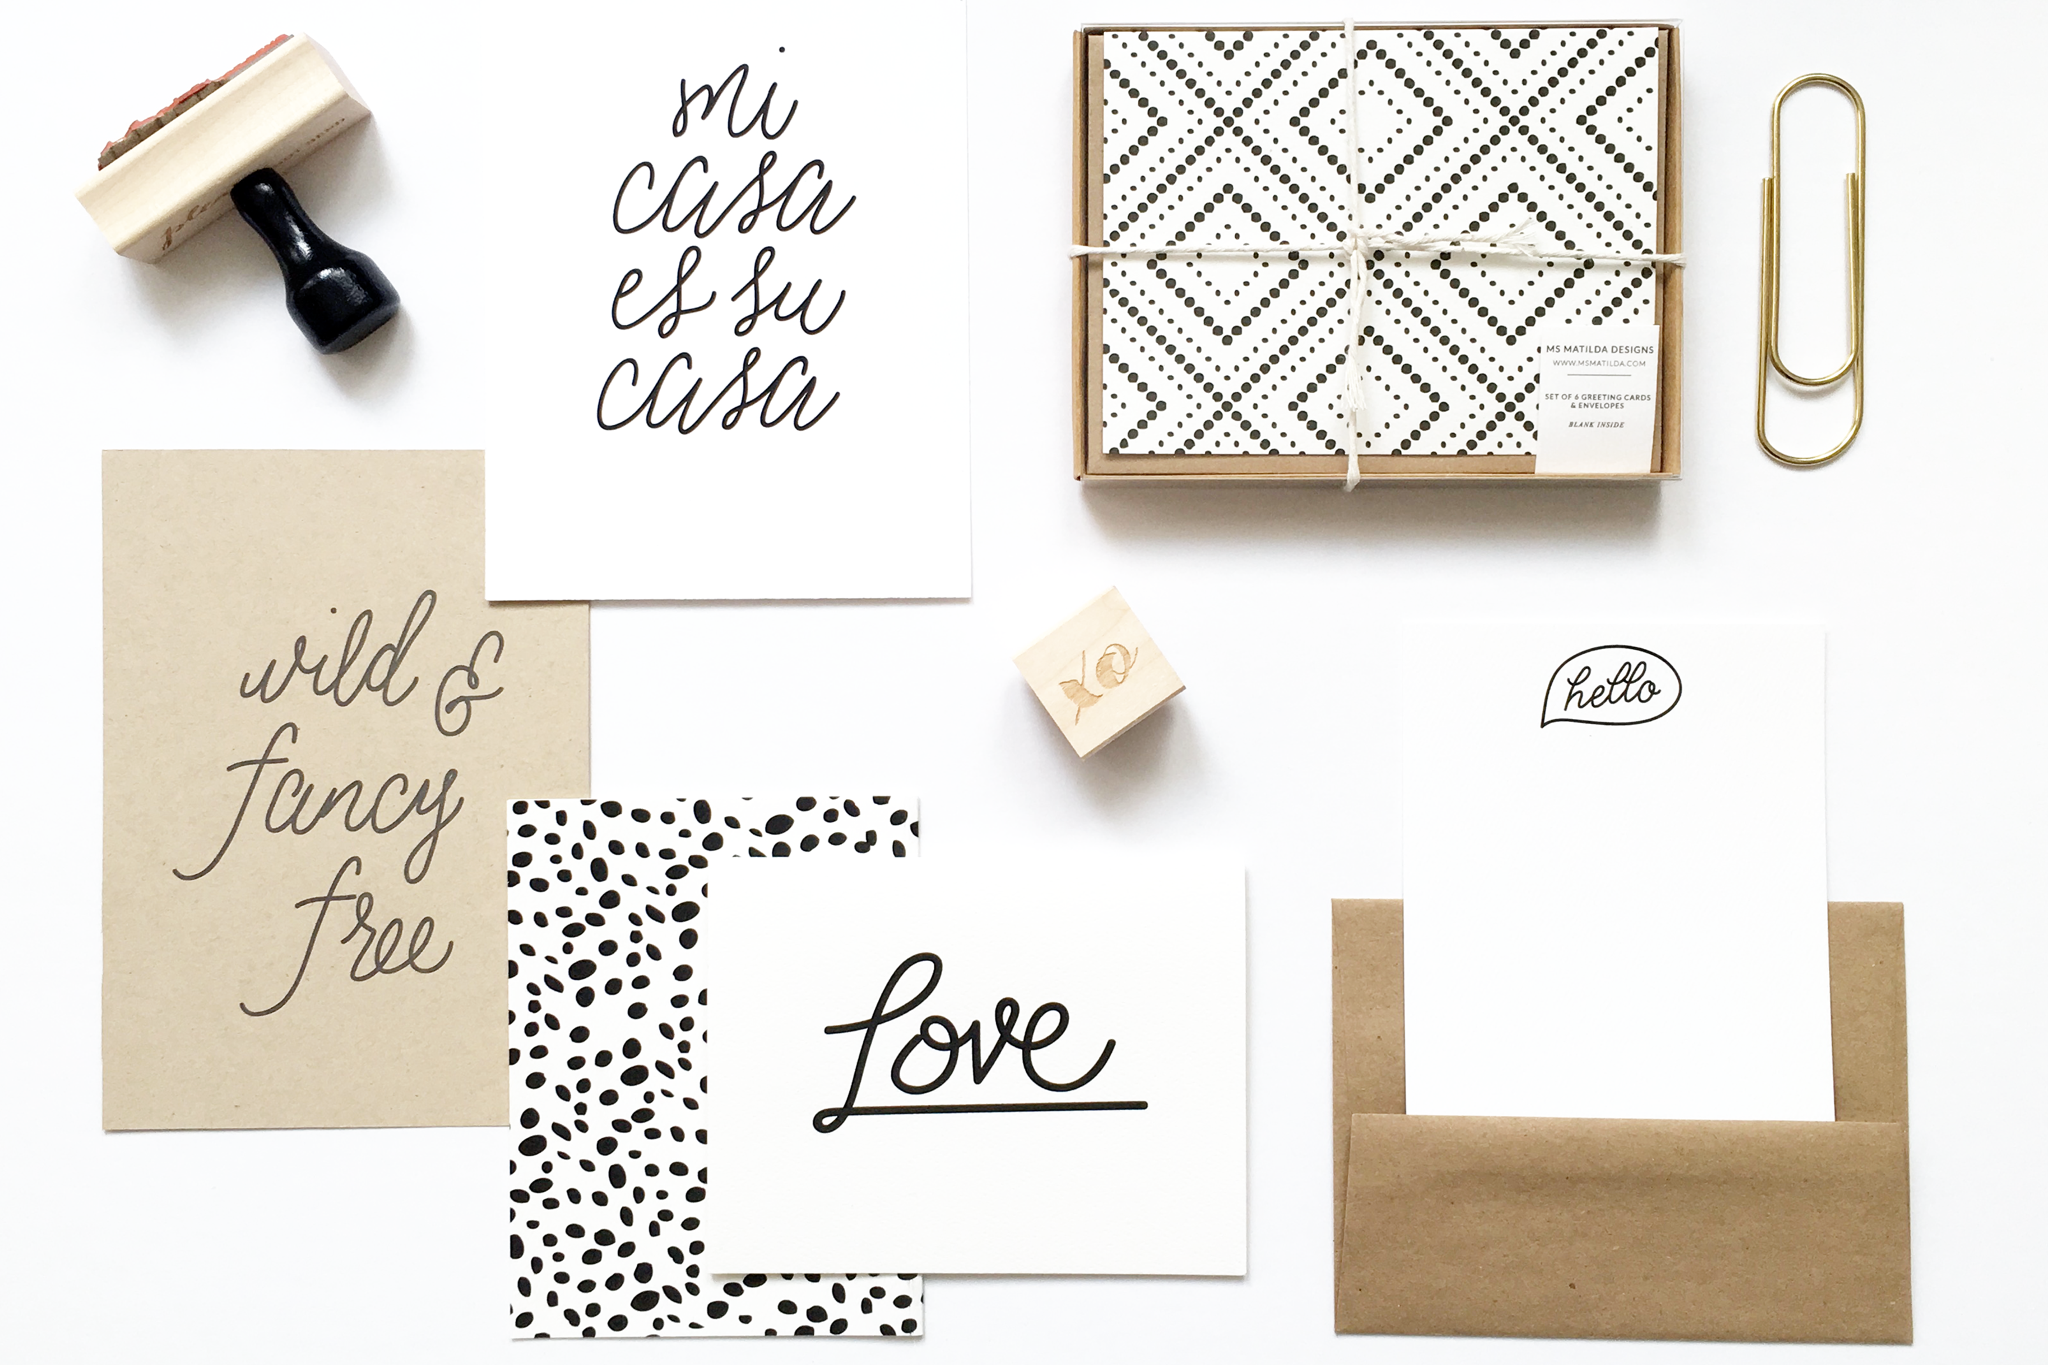 Ms. Matilda Designs paper goods